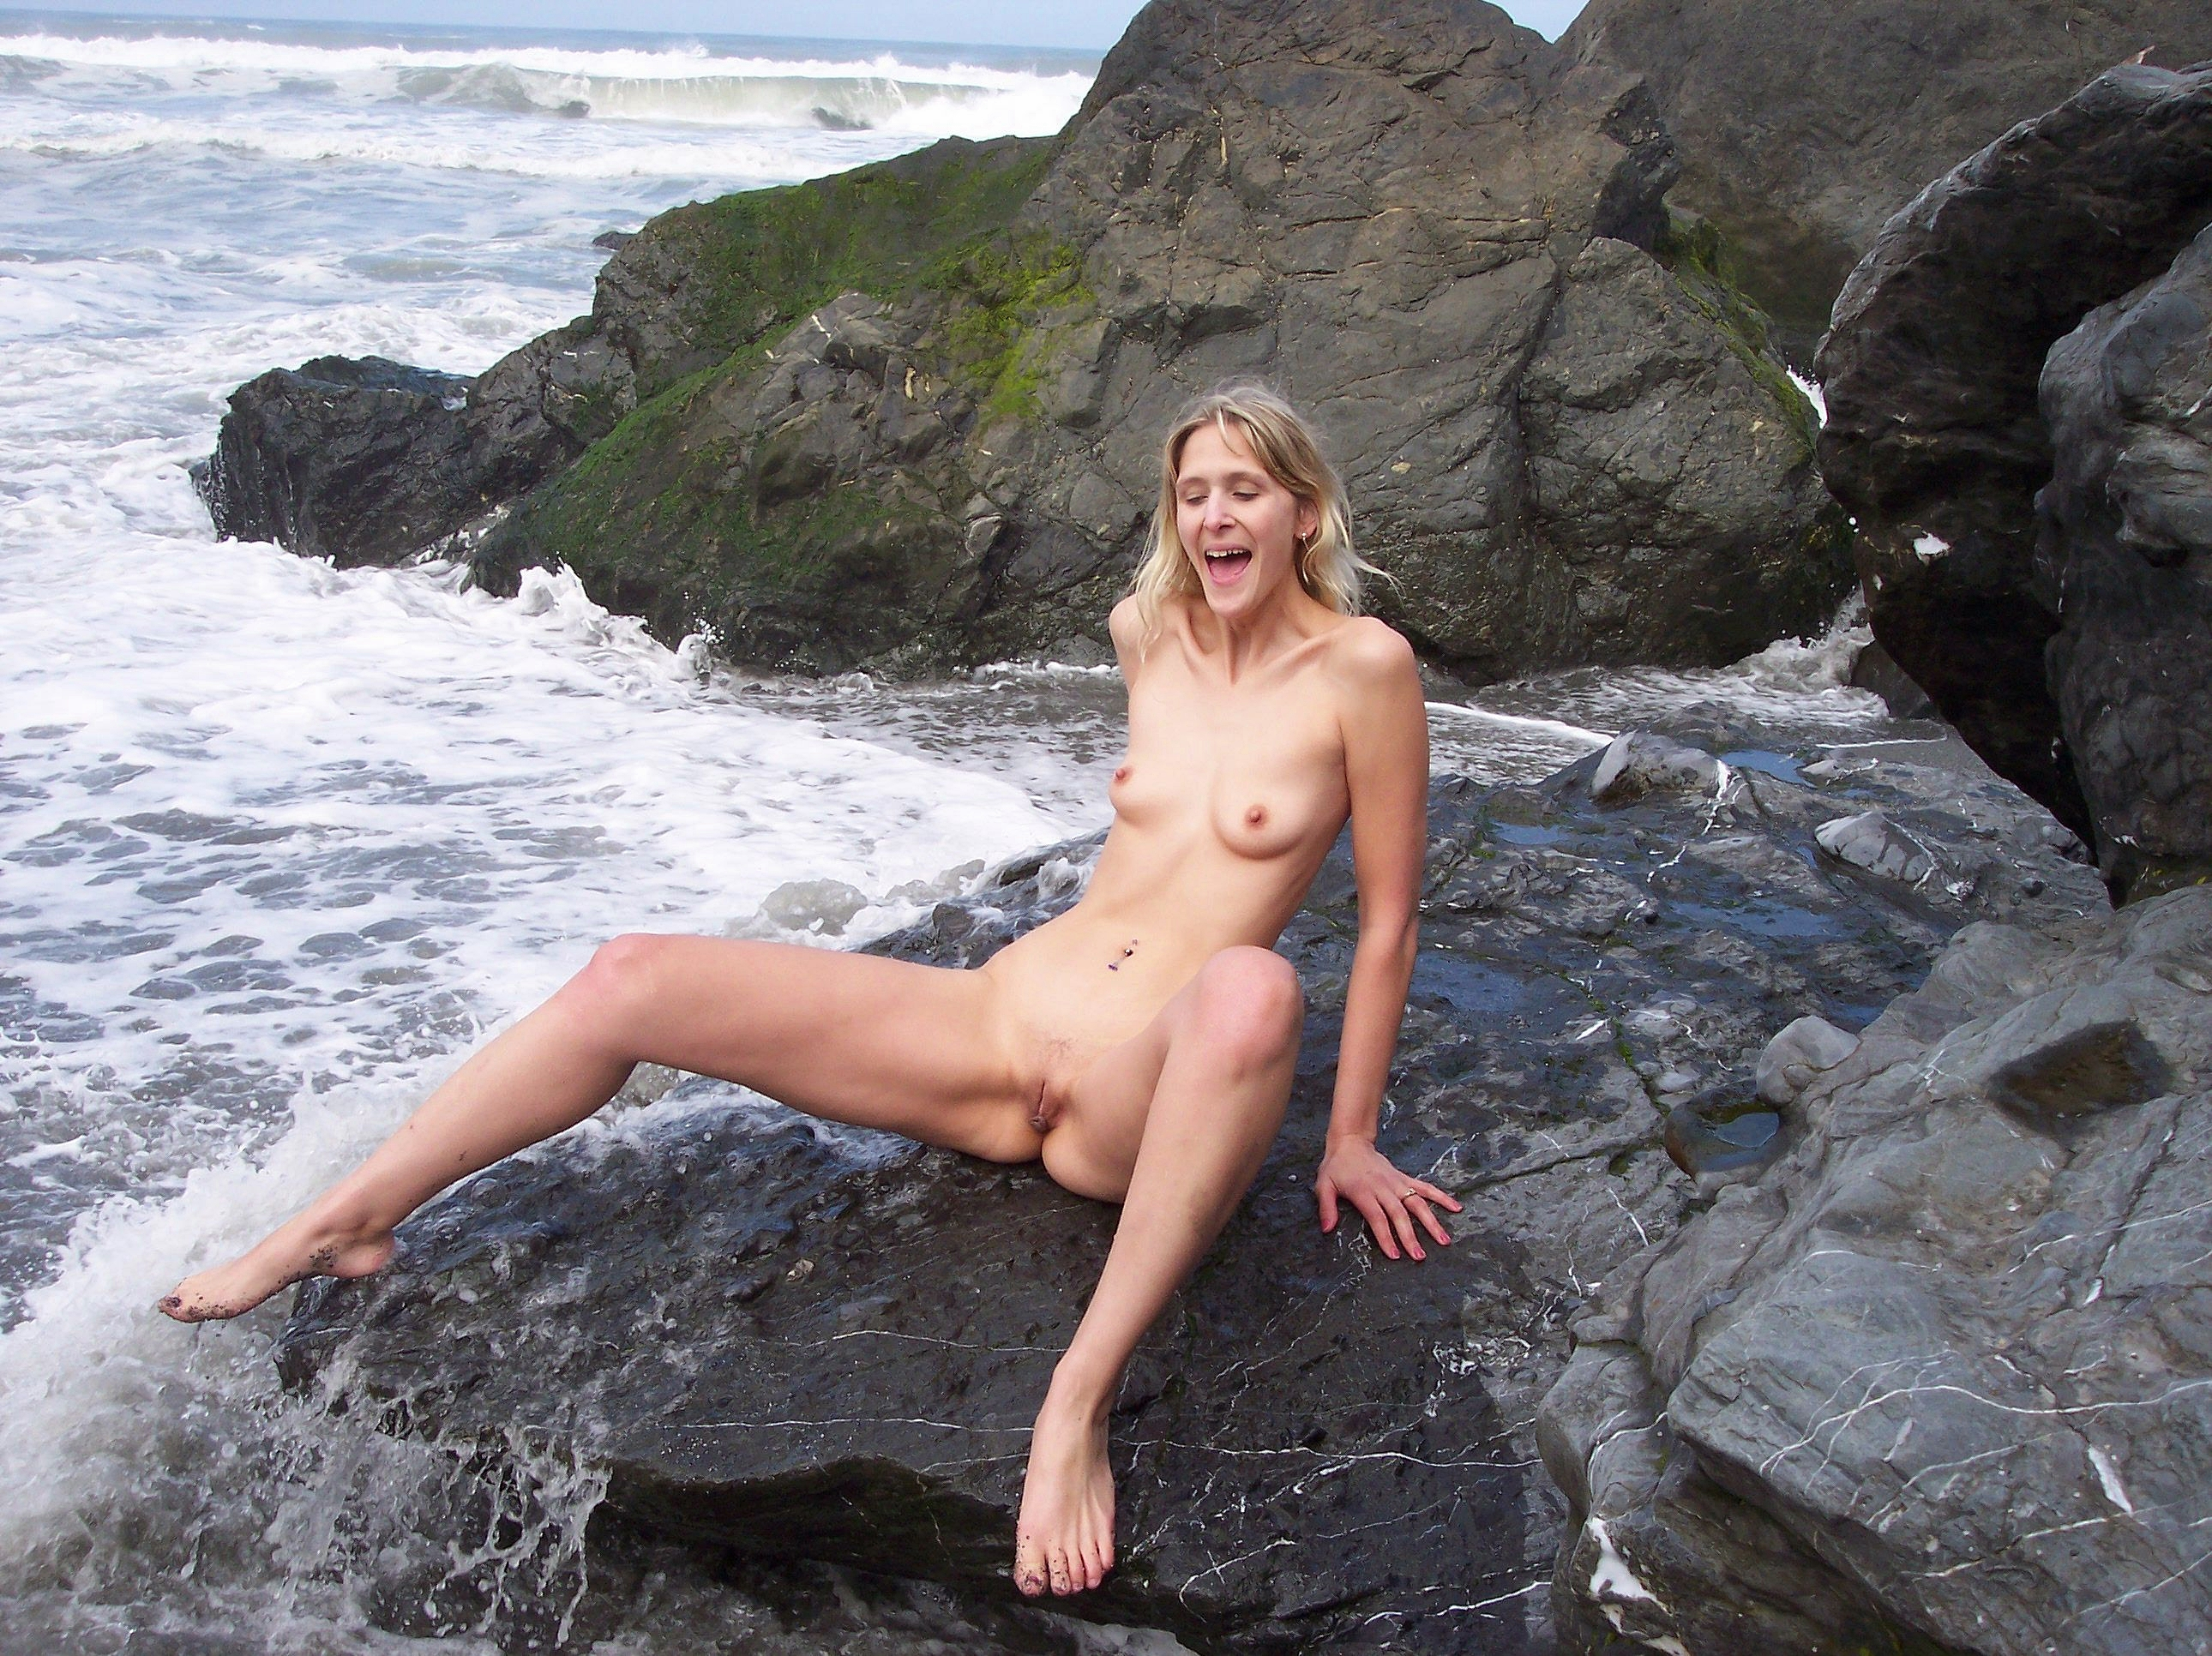 nudist jpg Commons